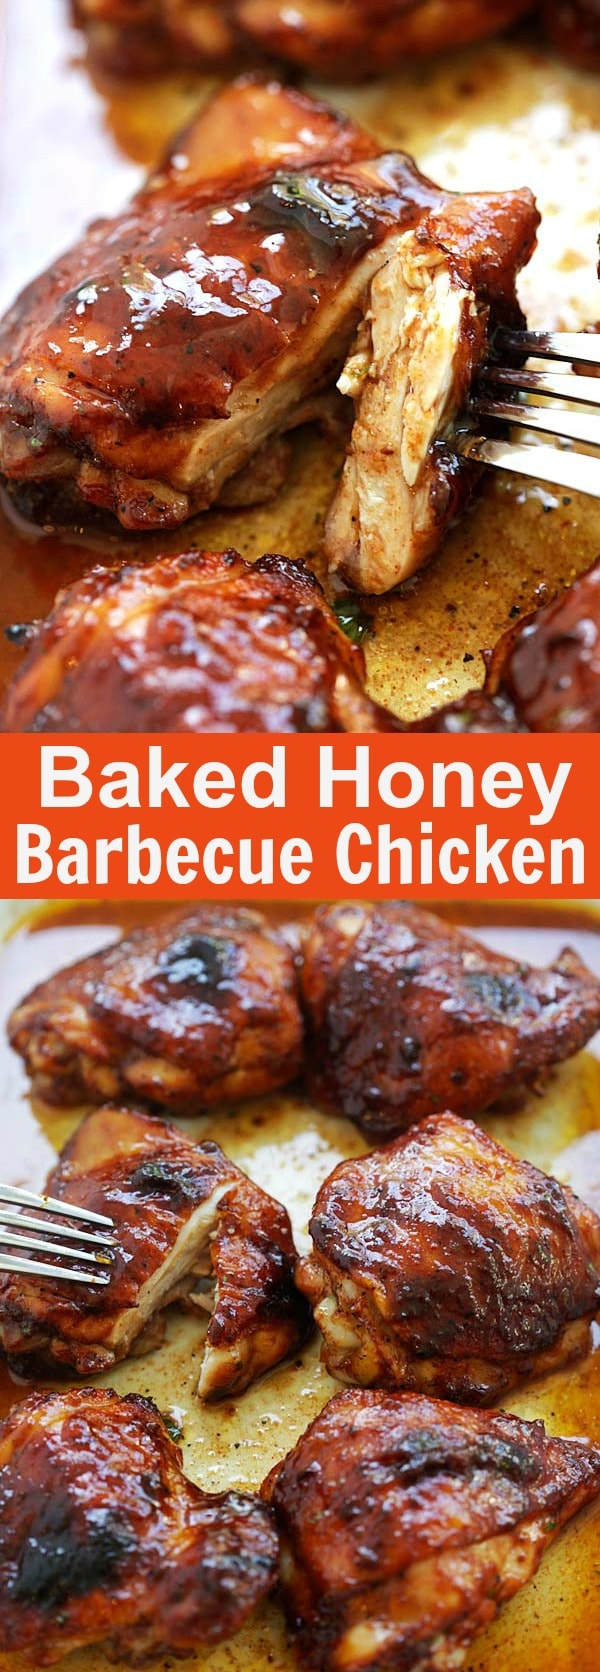 Baked Honey Barbecue Chicken - moist and juicy chicken thighs marinated with smoky honey barbecue sauce and baked to perfection. So good | rasamalaysia.com